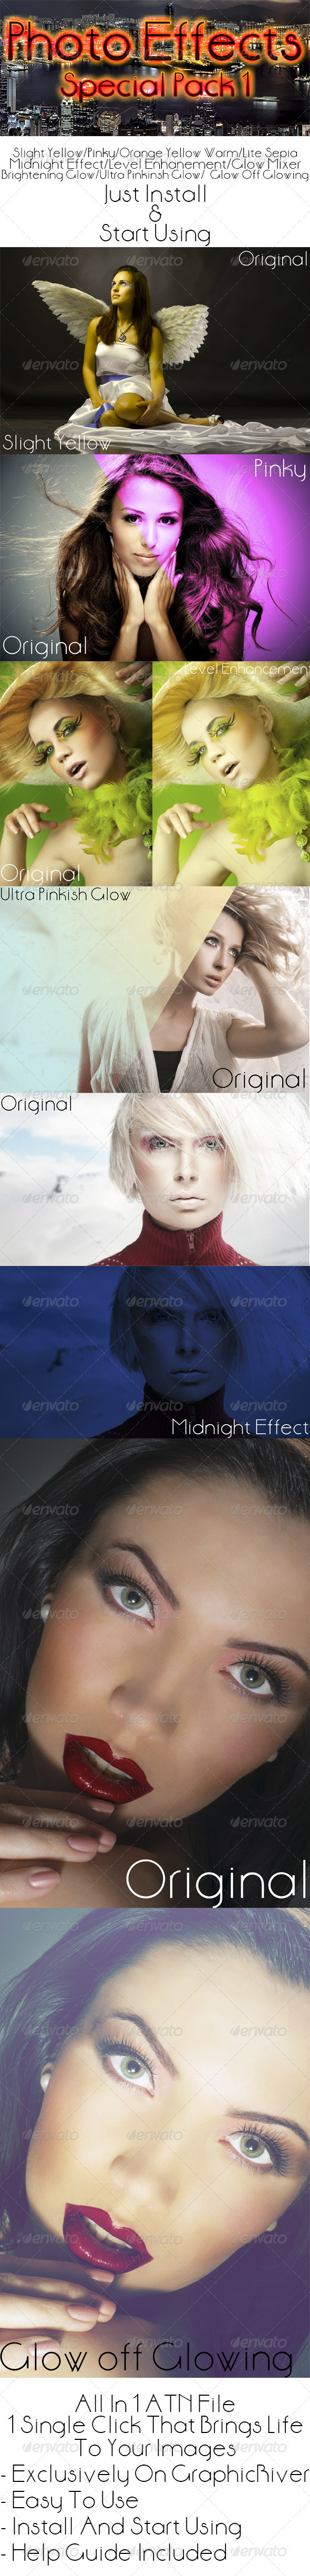 GraphicRiver Photo Effects Special Pack 1 7292740